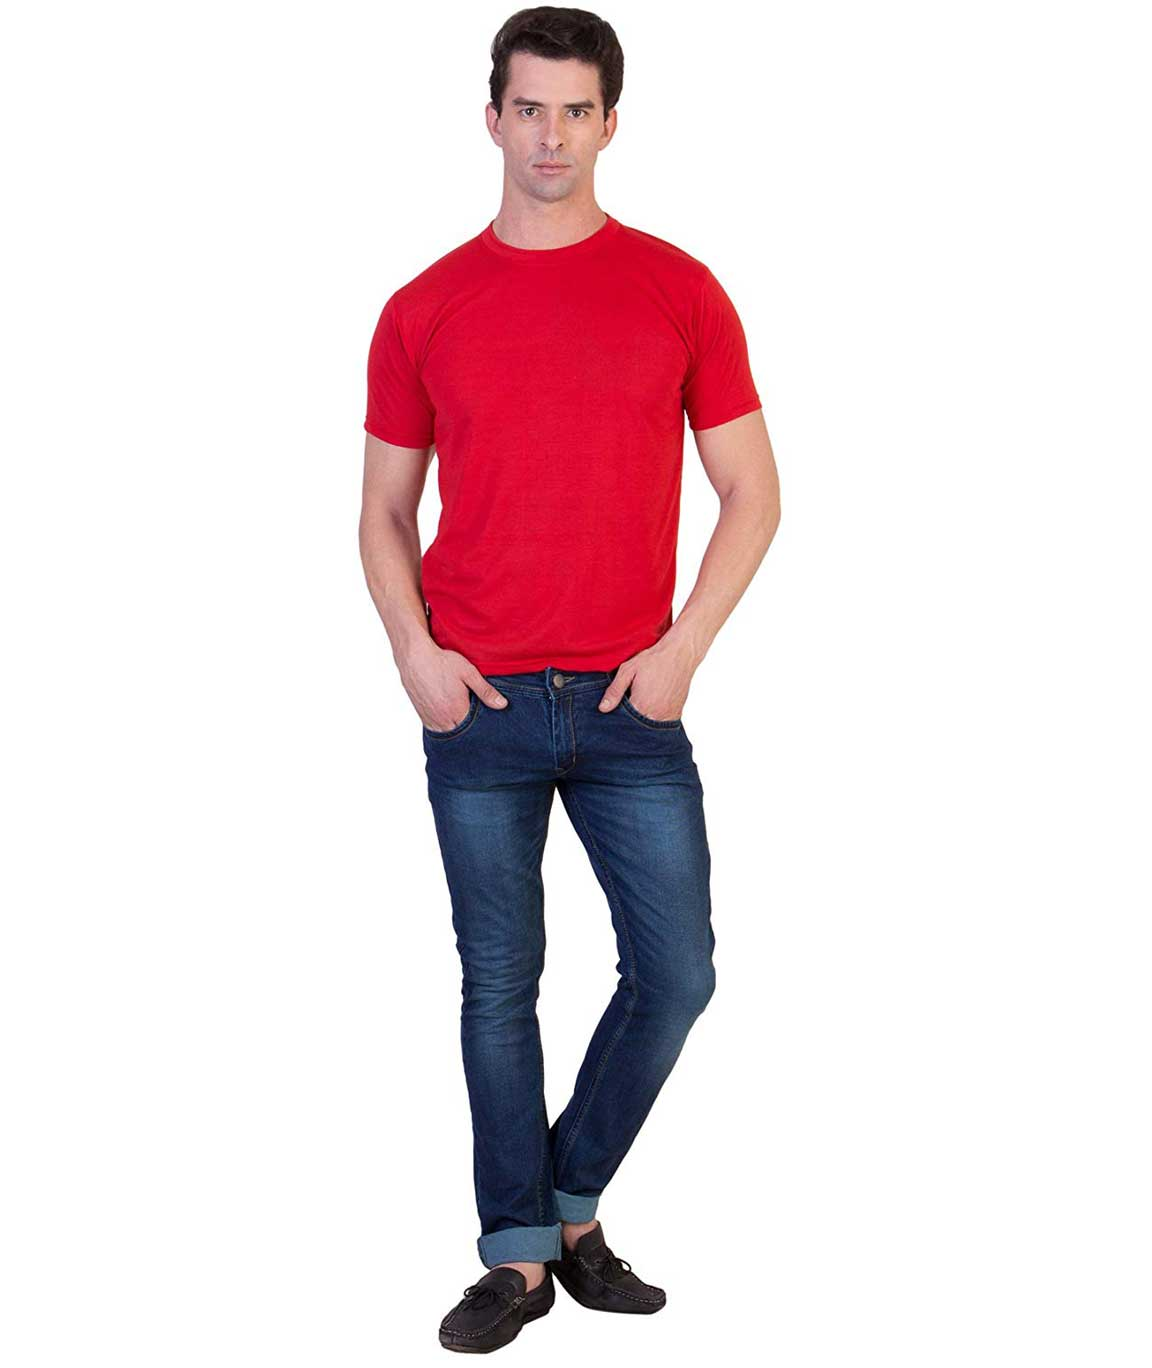 Vestiario Round Neck Dry Fit T-Shirts Combo of 2